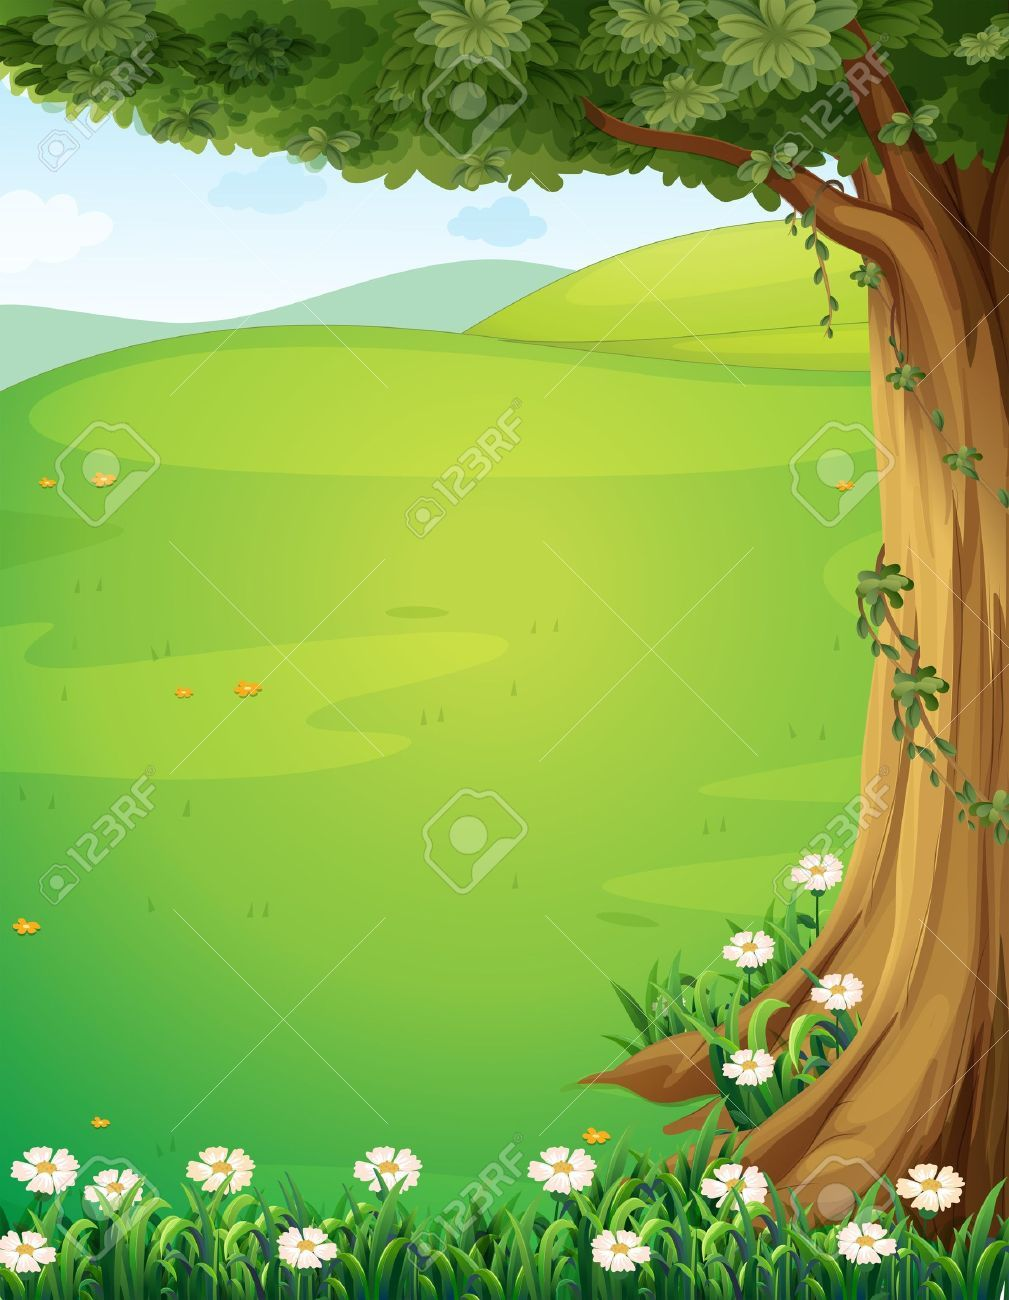 Illustration Of A View Of The Hills With A Tree And Flowers Royalty Free Cliparts, Vectors, And Stock Illustration. Pic 22065634.